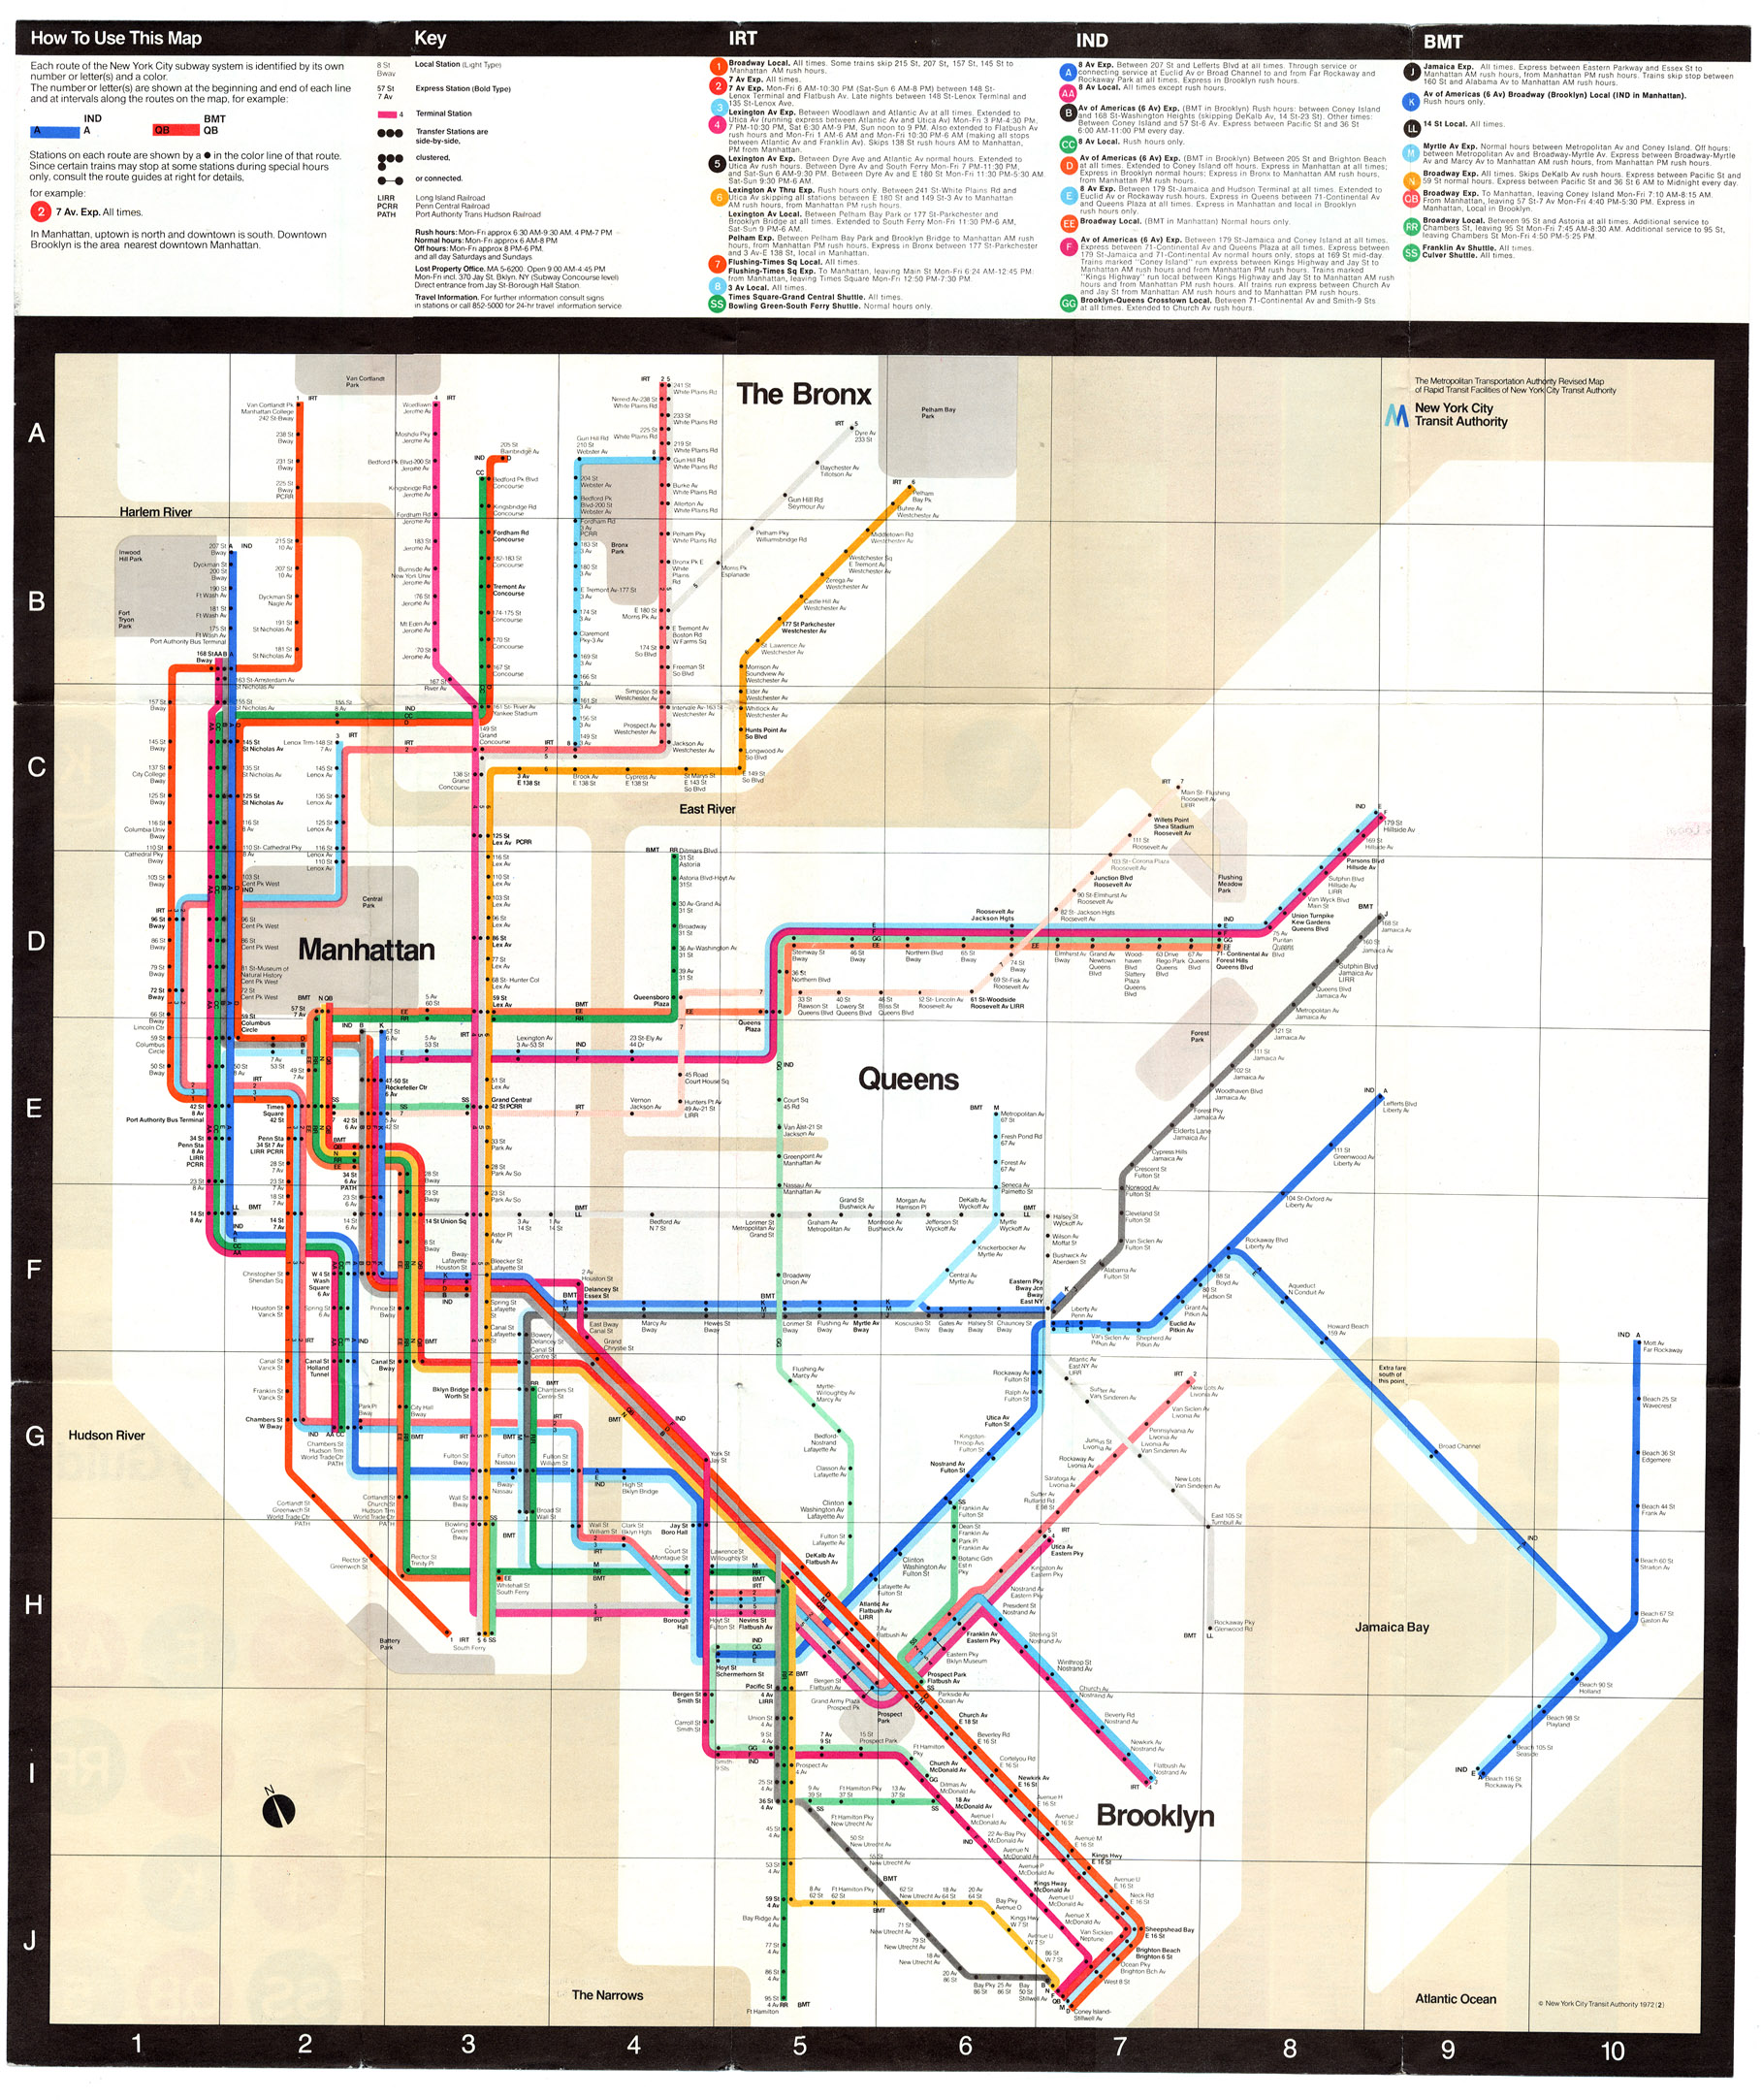 Sos Santos Subway Map.Urban Maps Petros Jordan